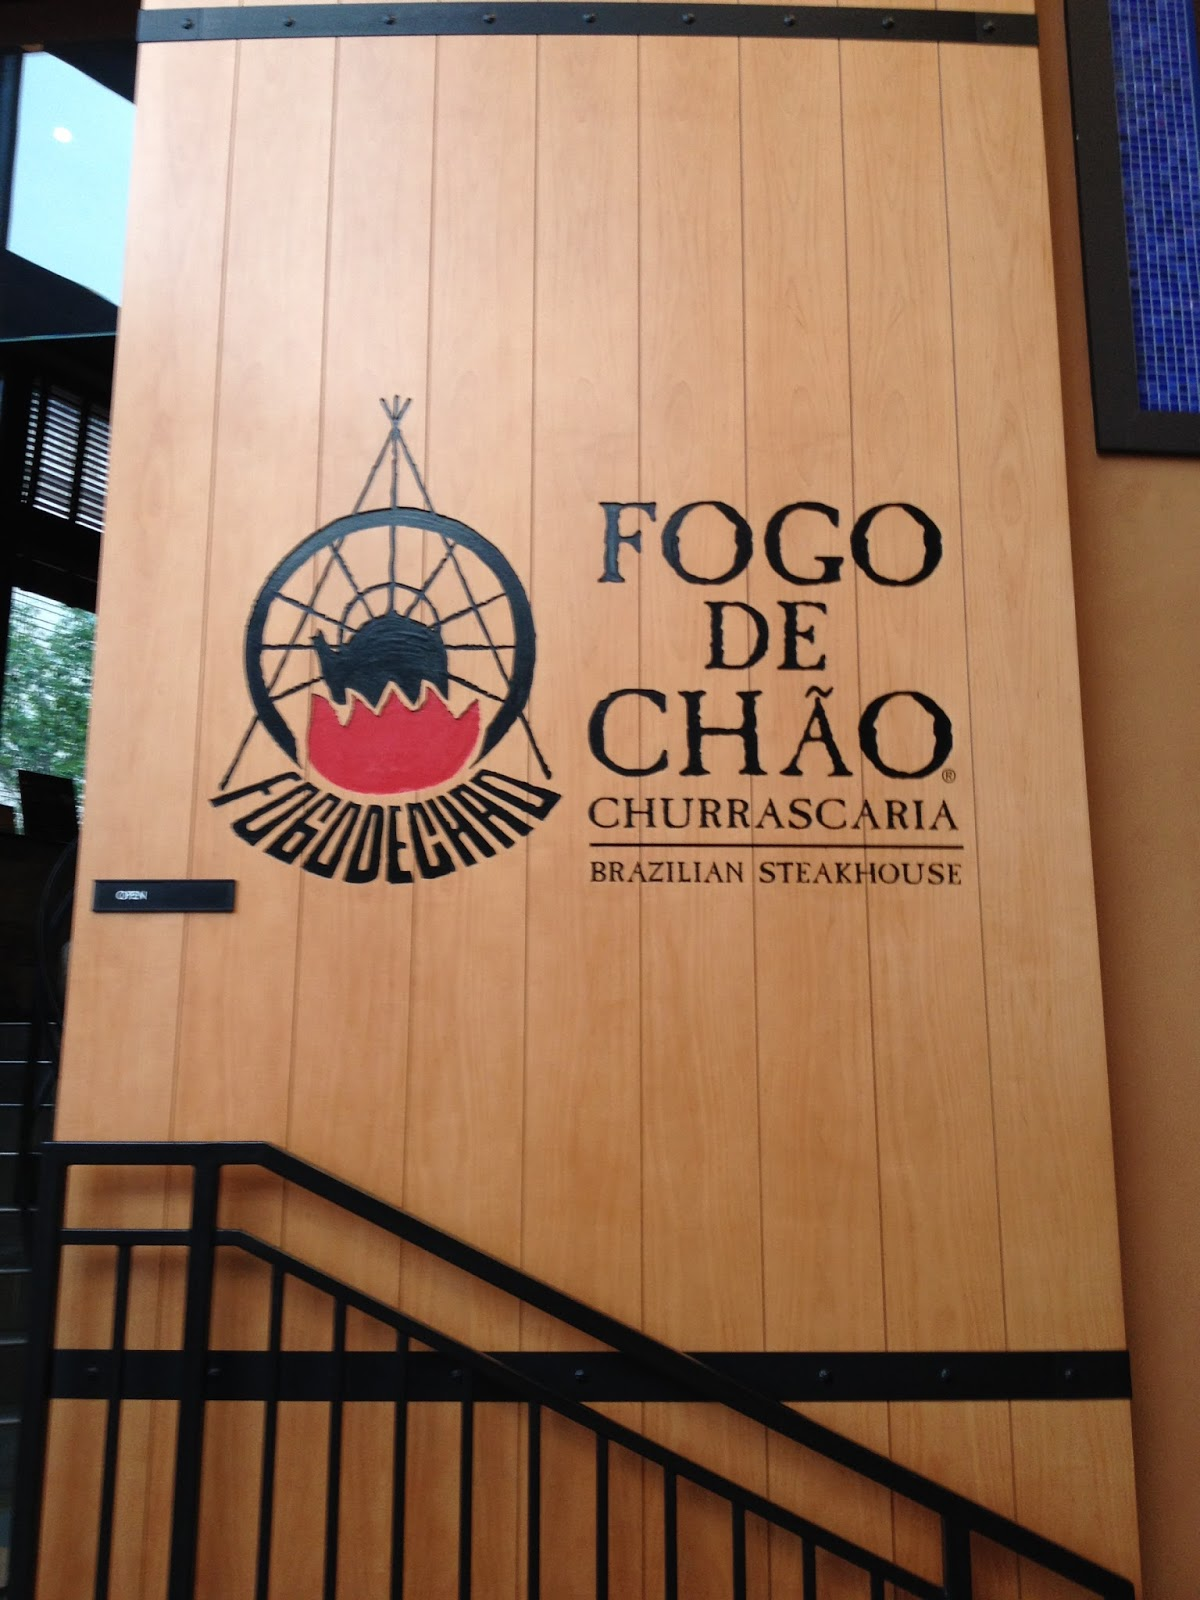 Fogo de Chao: Brazilian Steakhouse